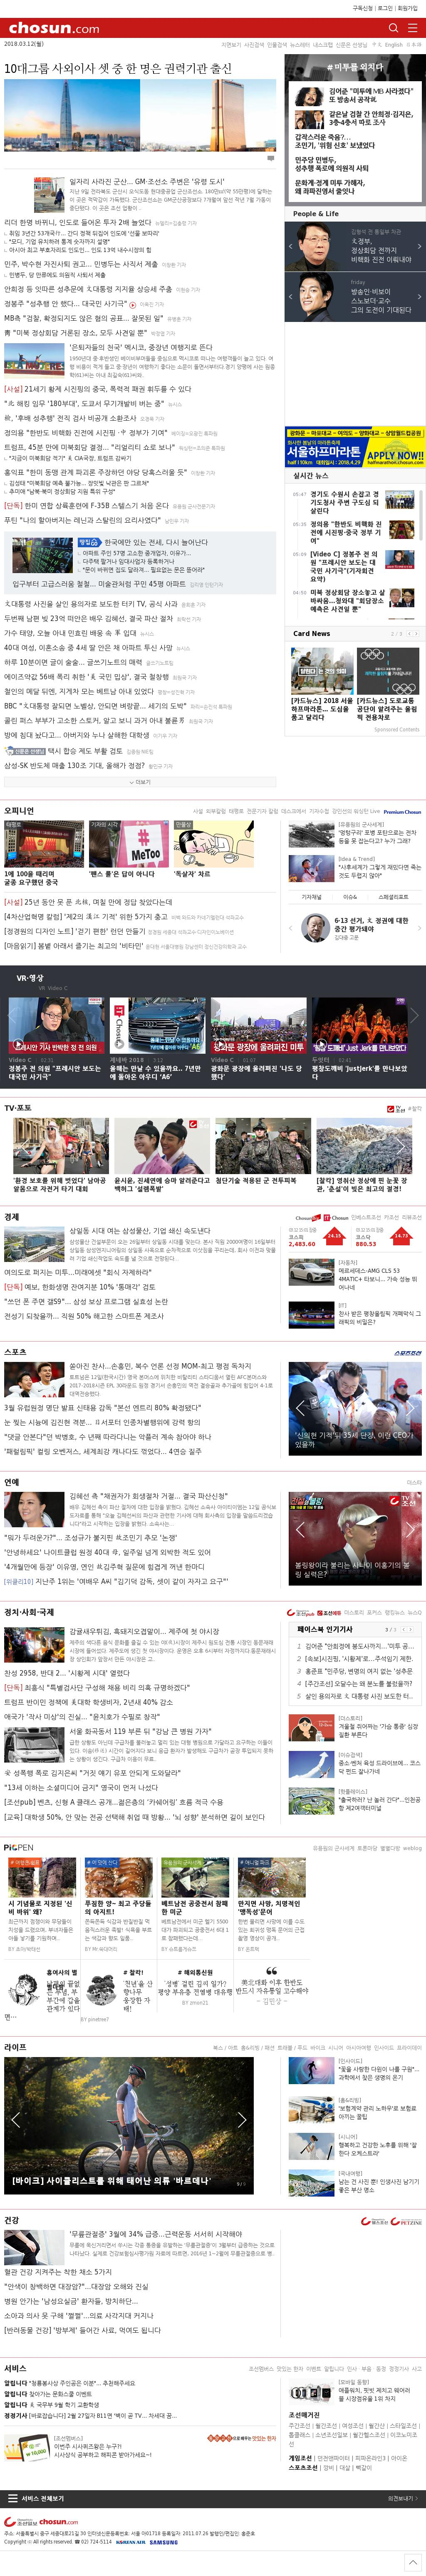 chosun.com at Monday March 12, 2018, 6:03 a.m. UTC